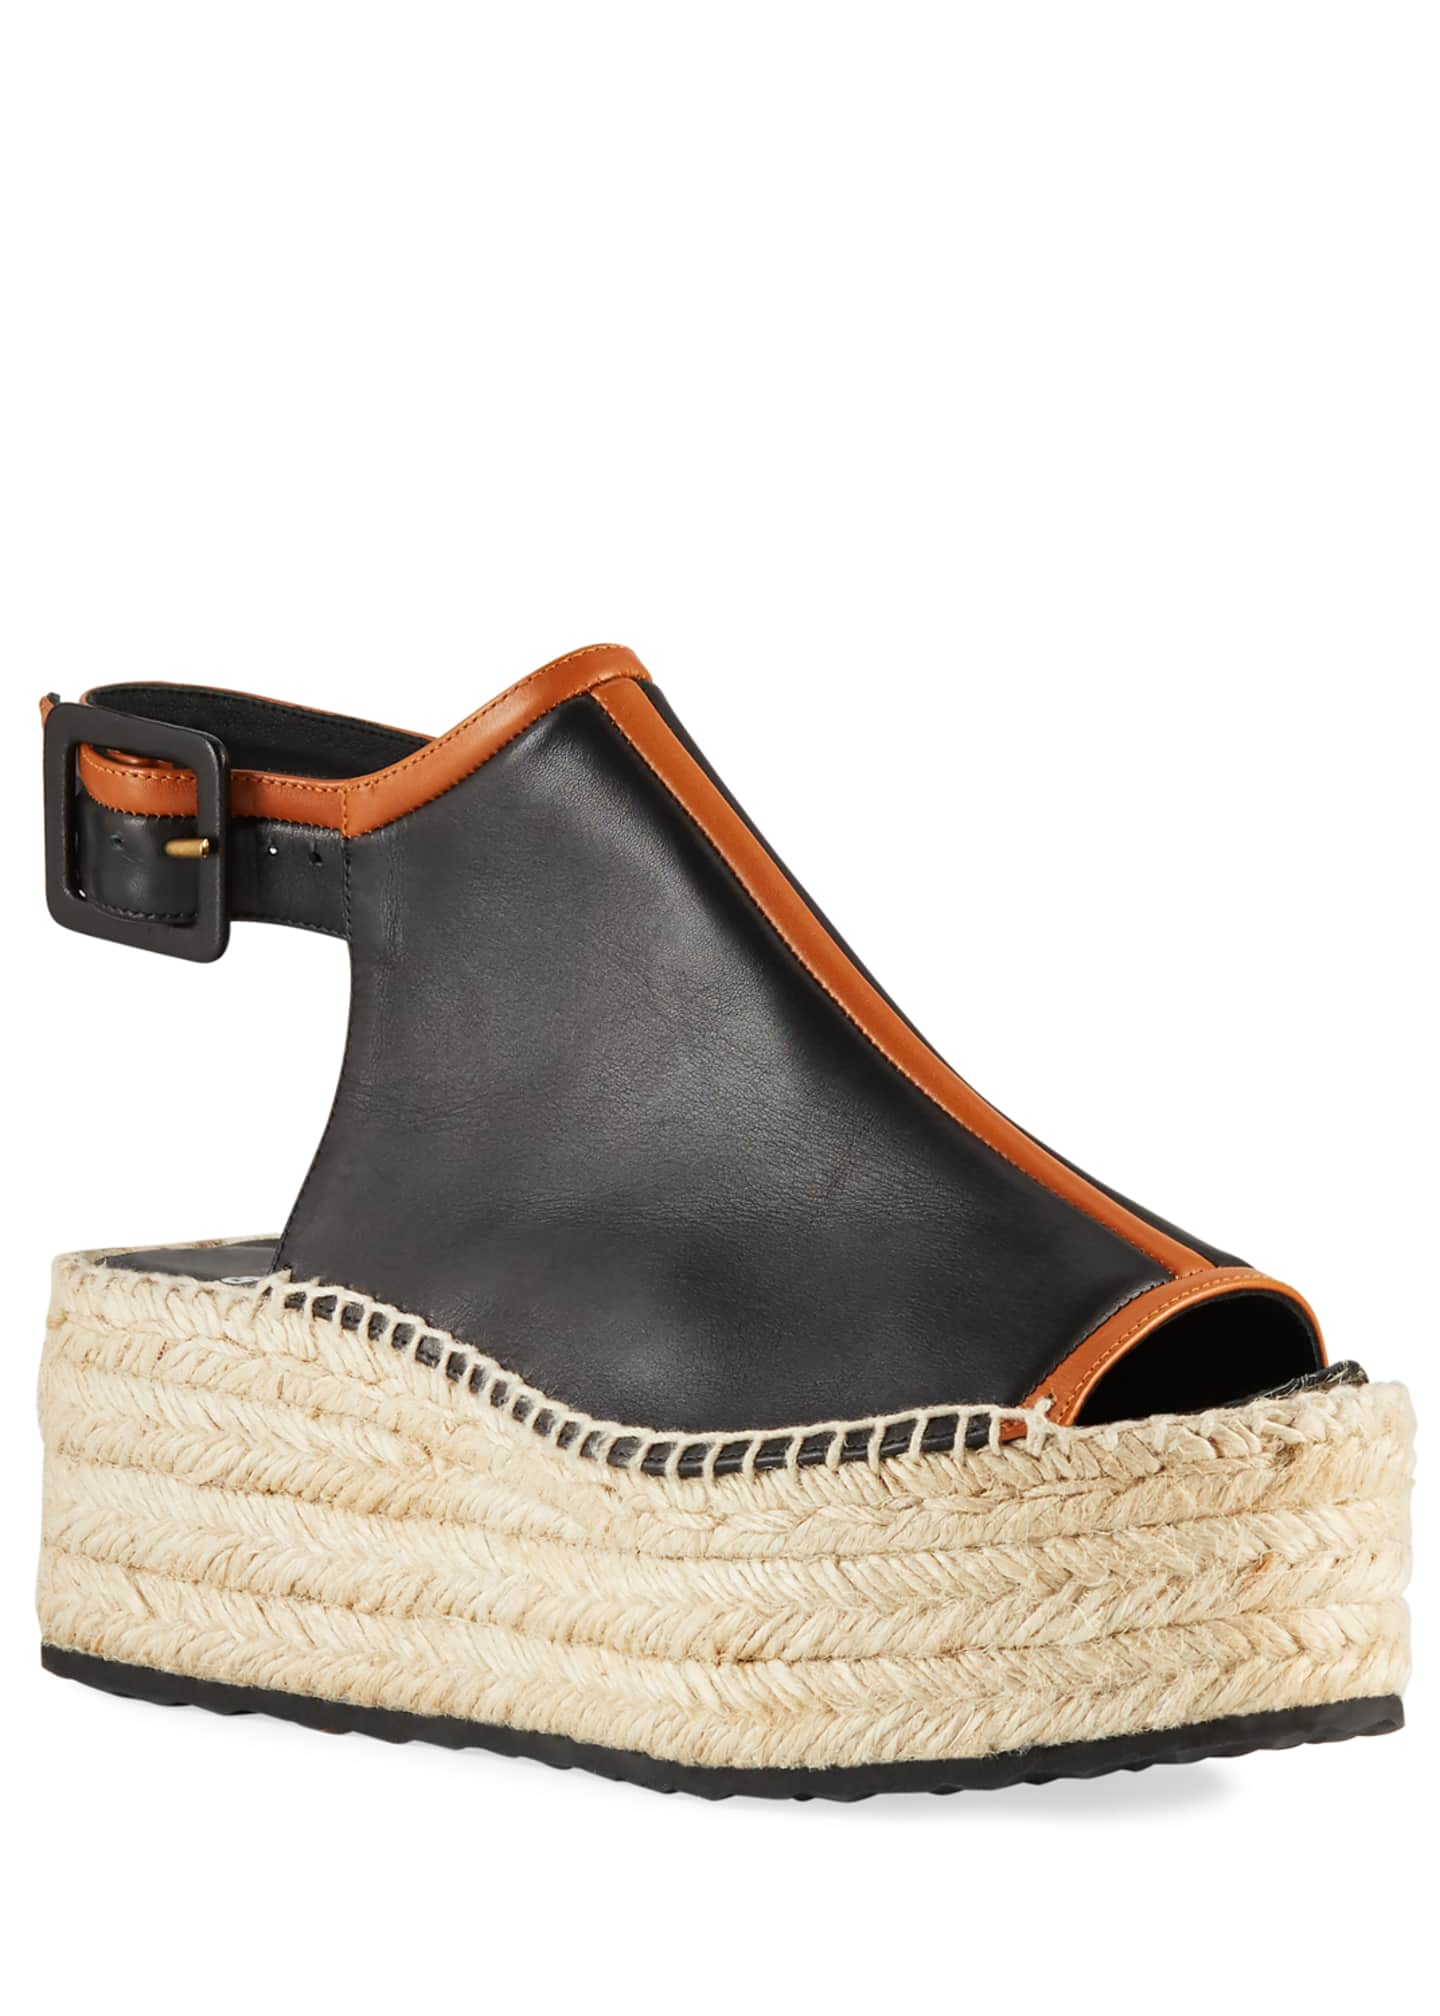 Image 1 of 3: Alpha Two-Tone Leather Espadrilles